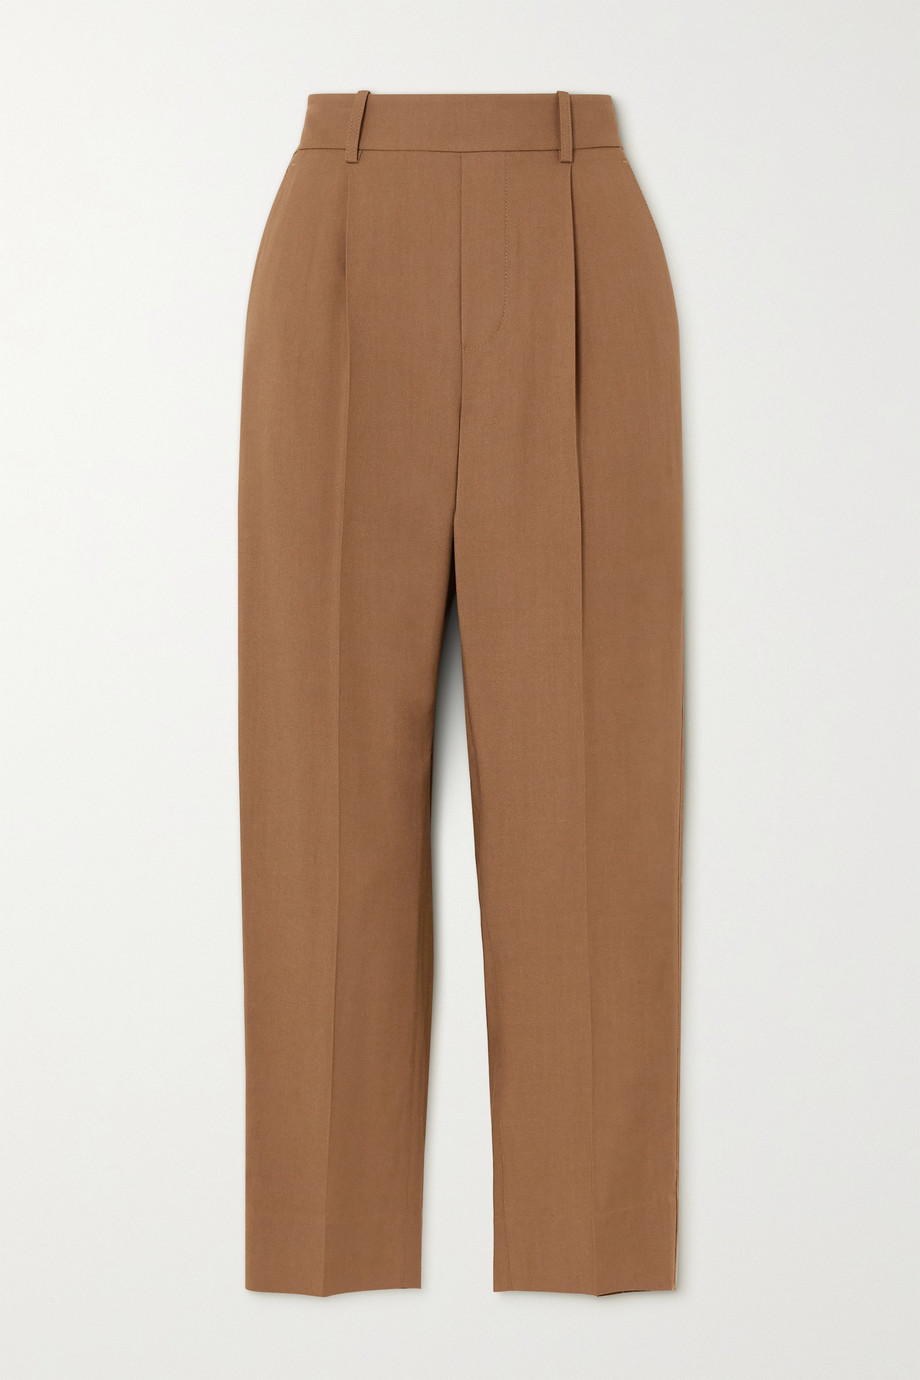 Vince Pleated twill tapered pants